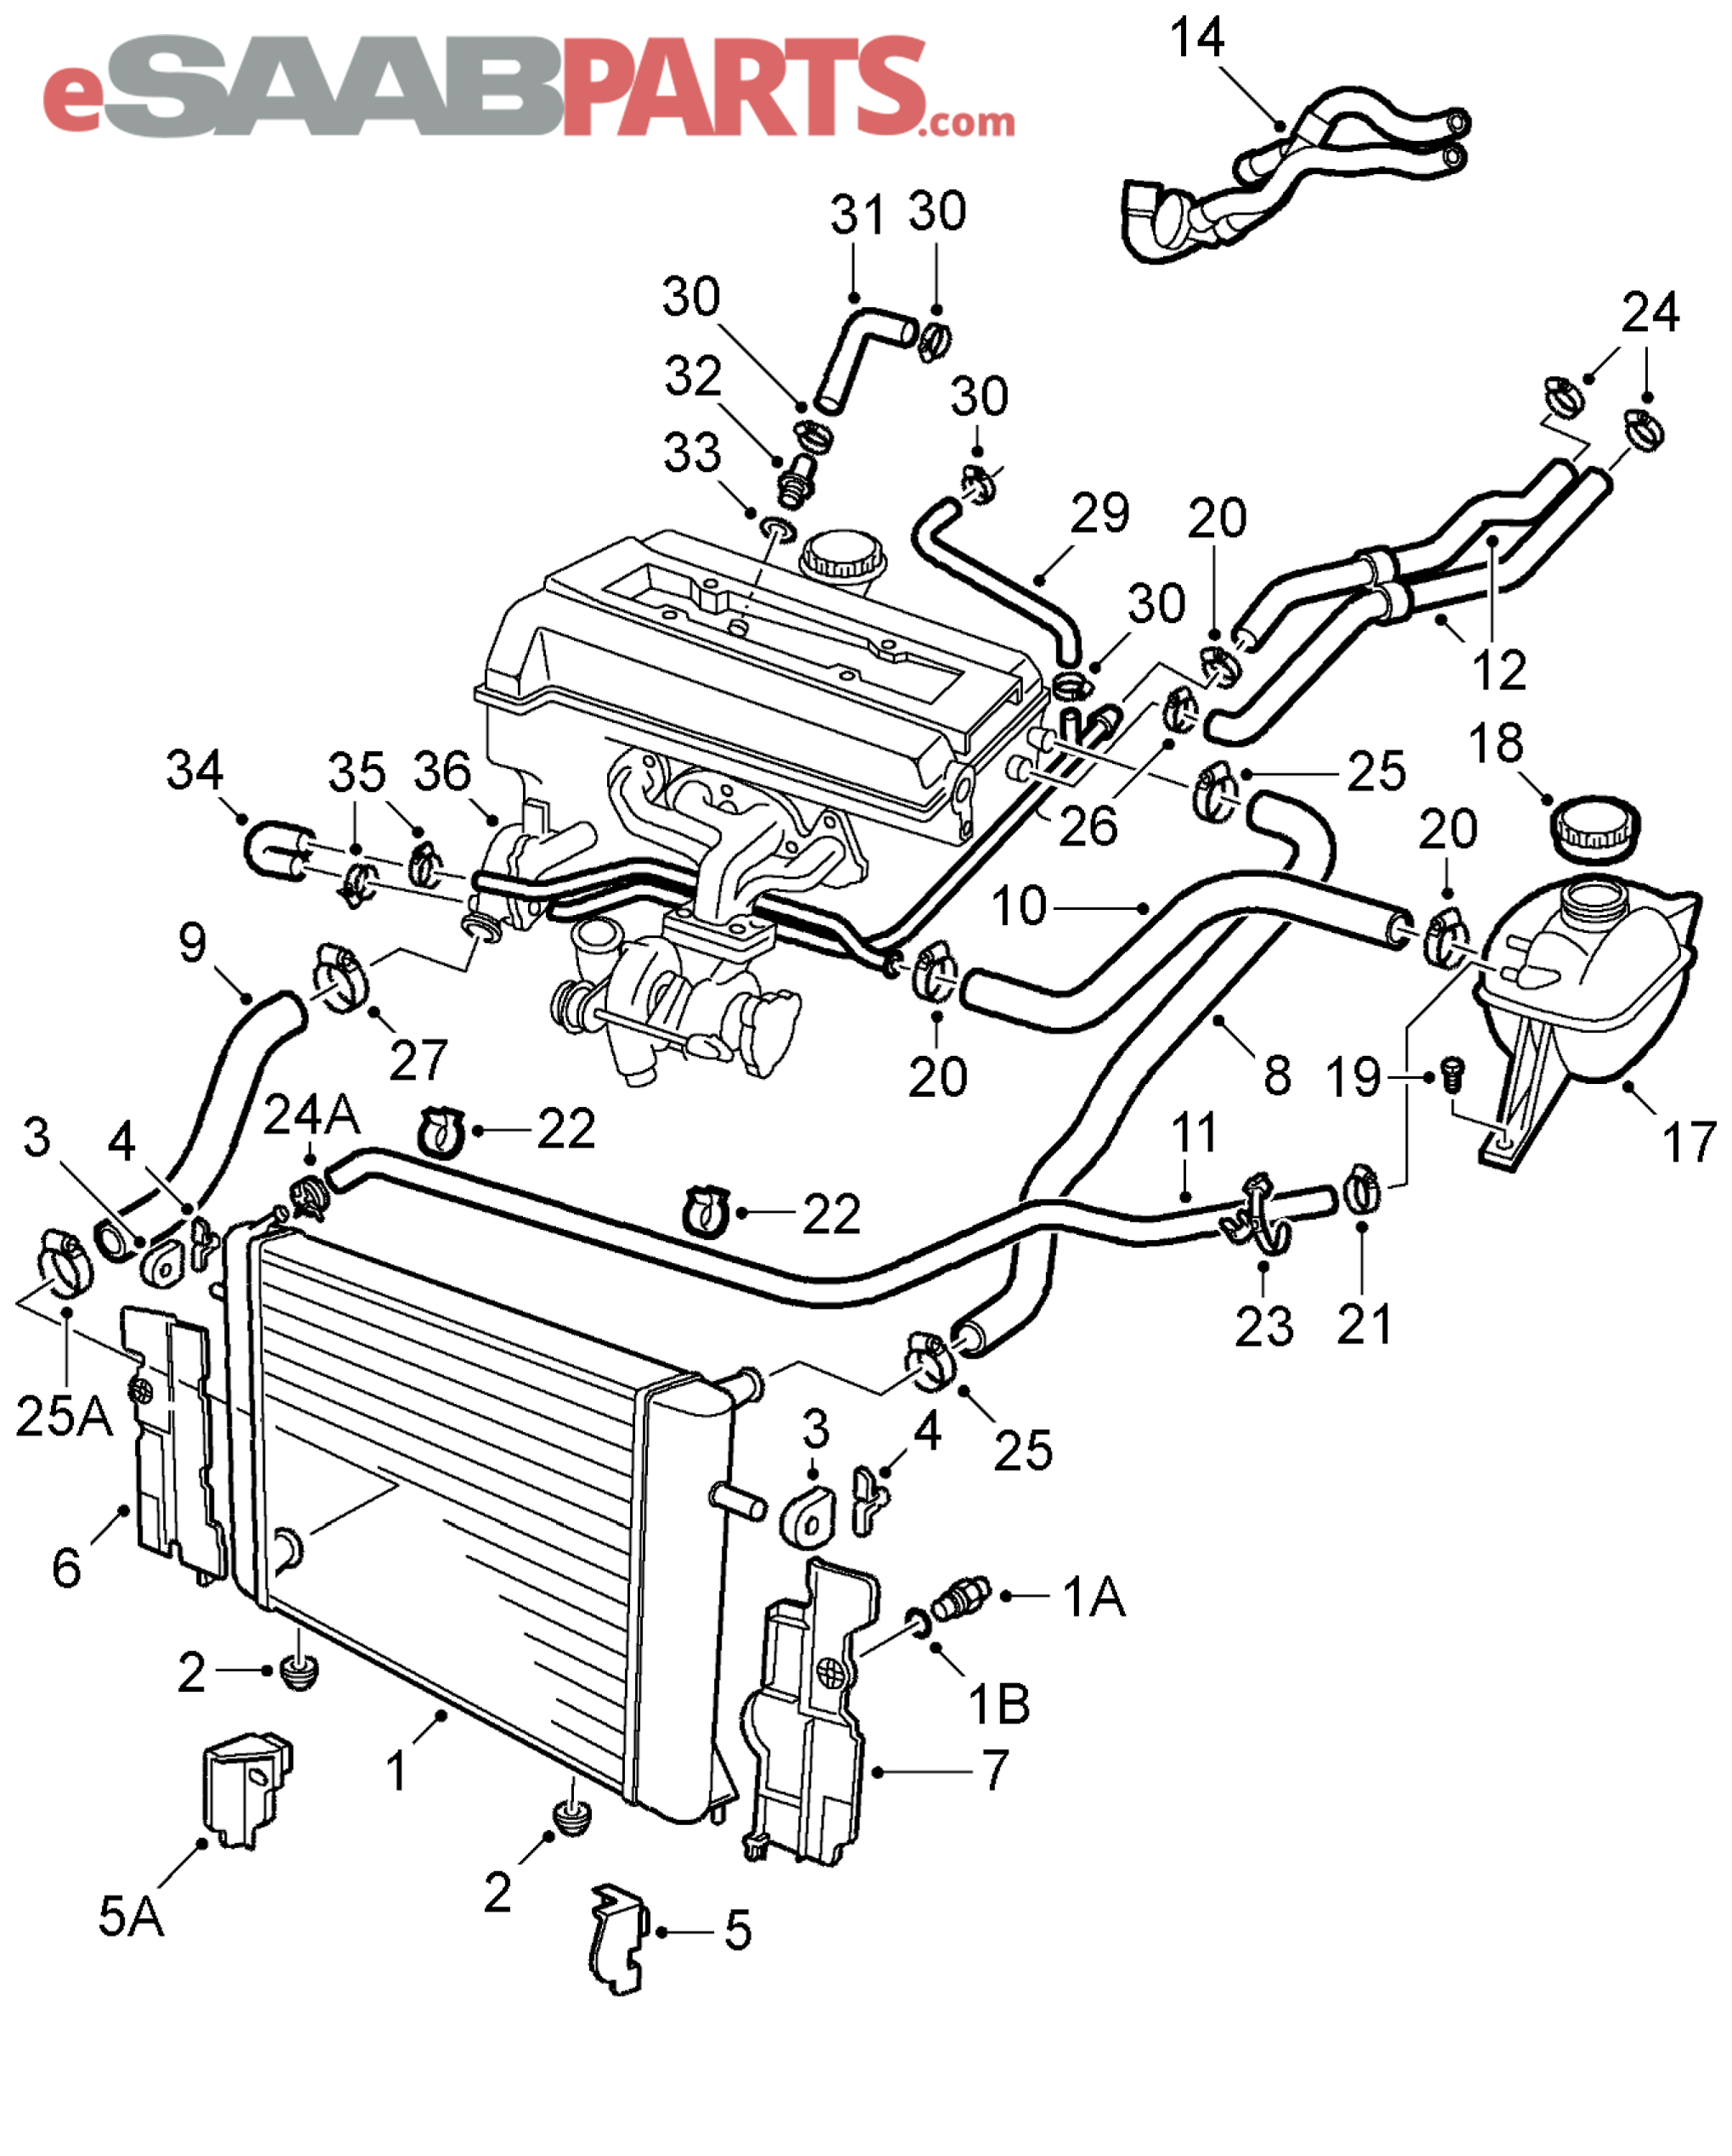 Saab 9 3 Wiring Diagram Saab Wiring Diagram Images